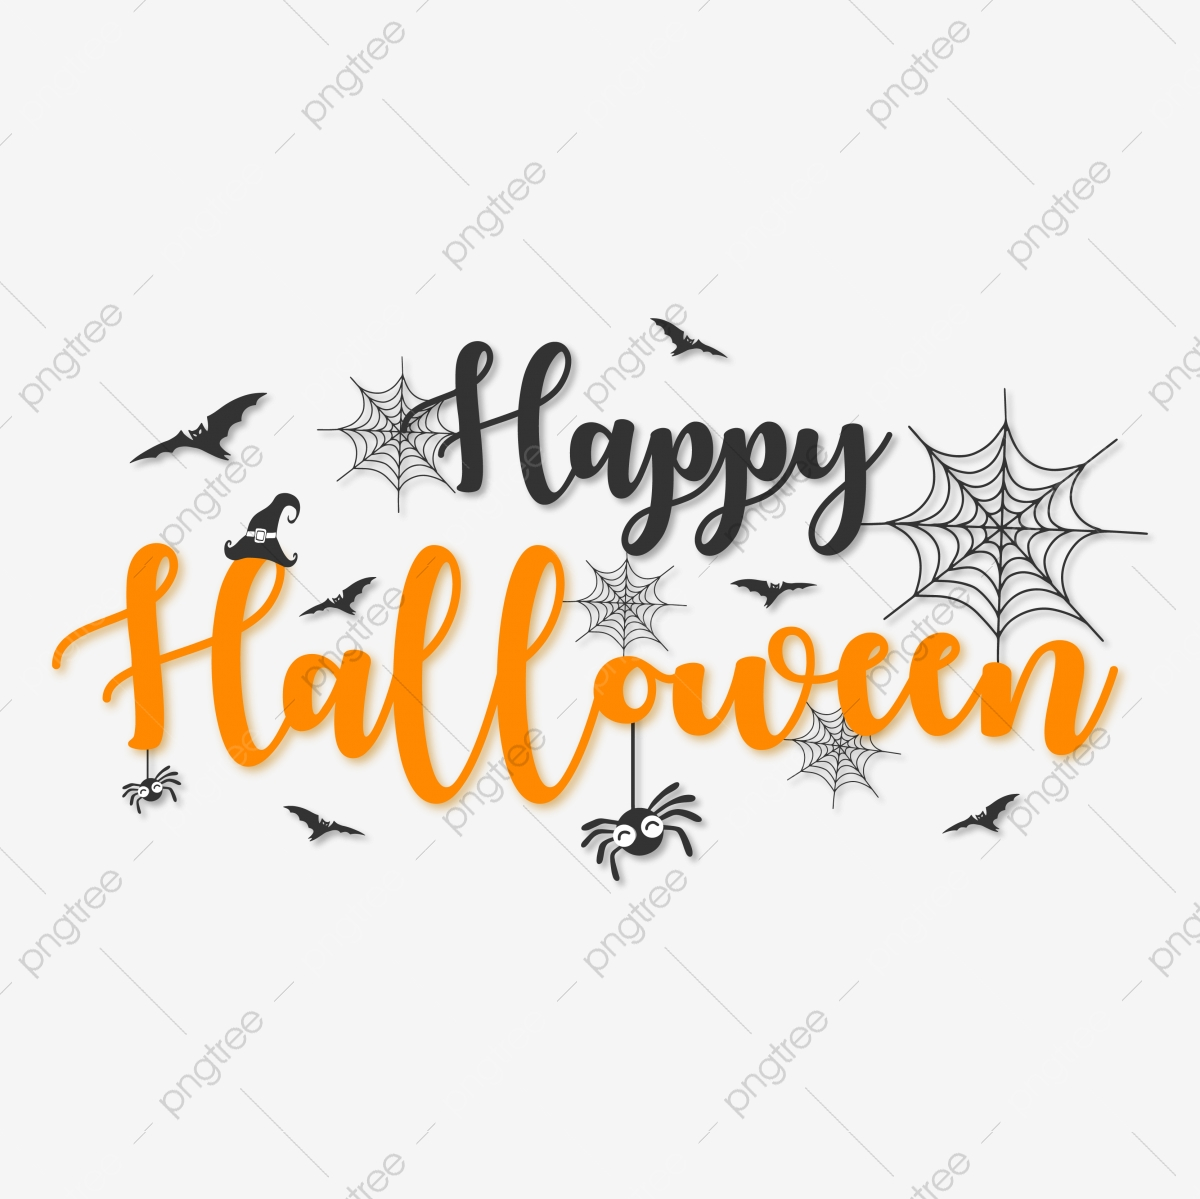 Happy Halloween Lettering Typography With Halloween Elements Typography Treats Trick Png And Vector With Transparent Background For Free Download